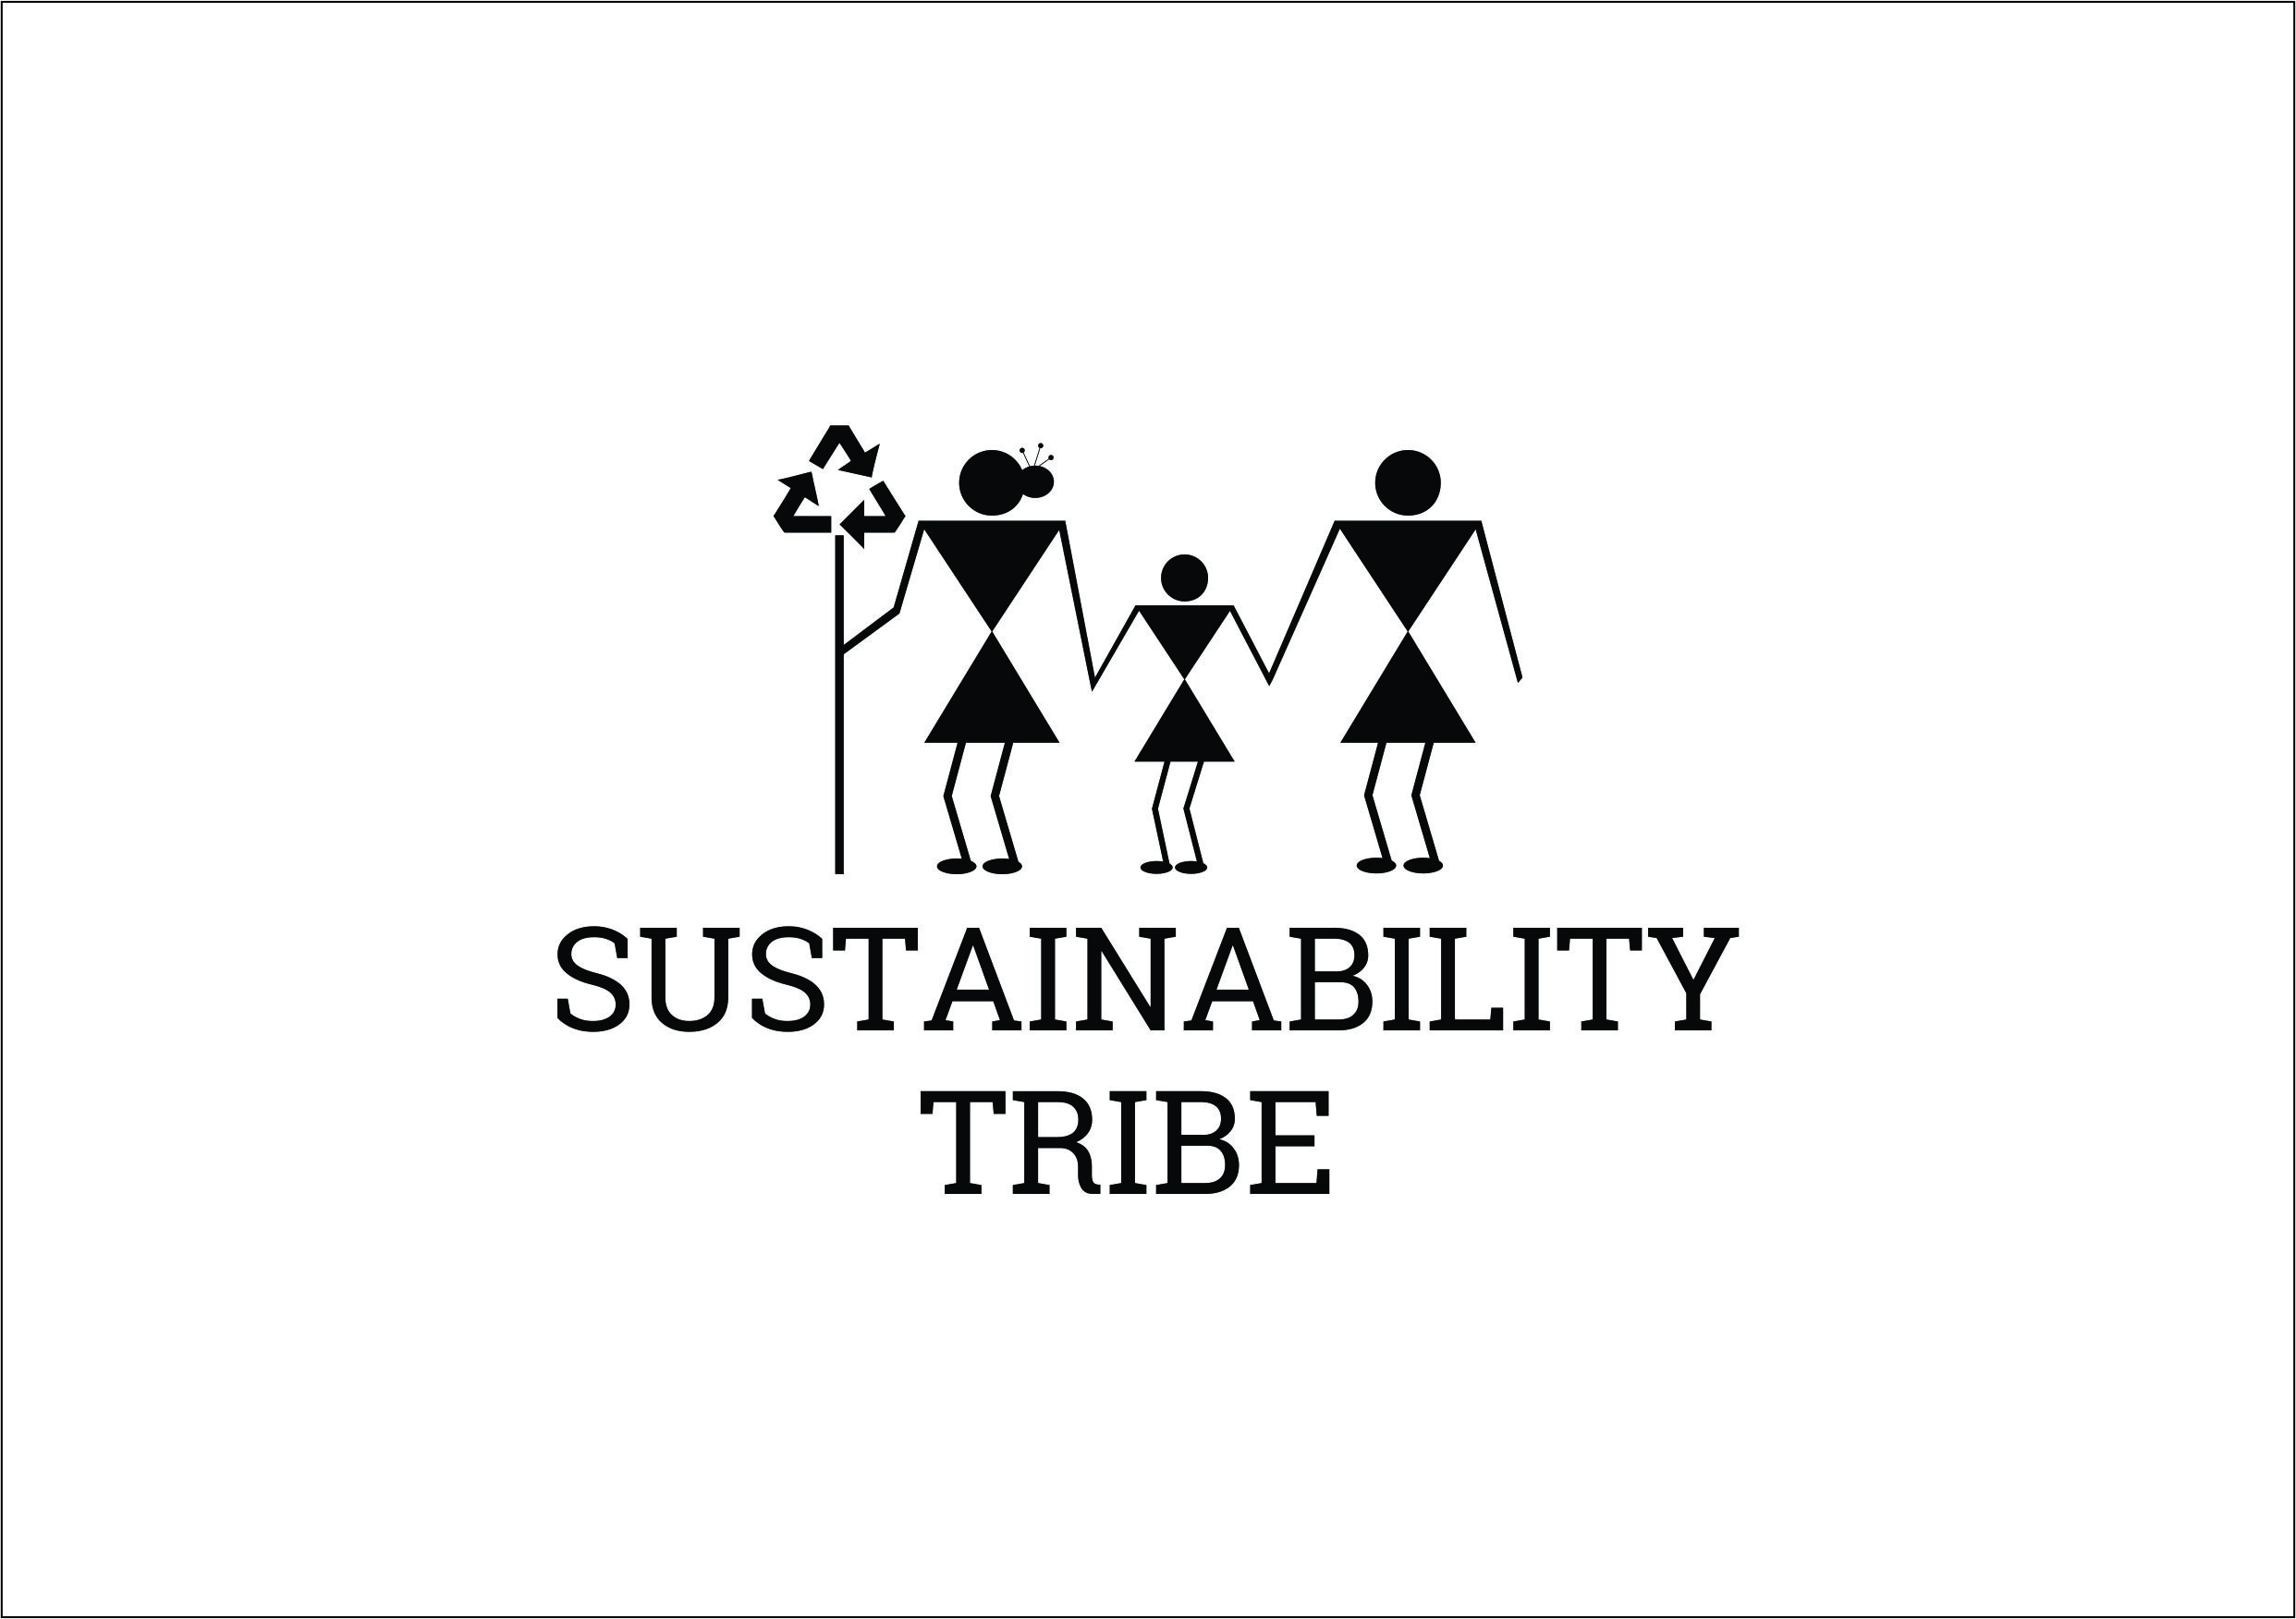 Sustainability Tribe